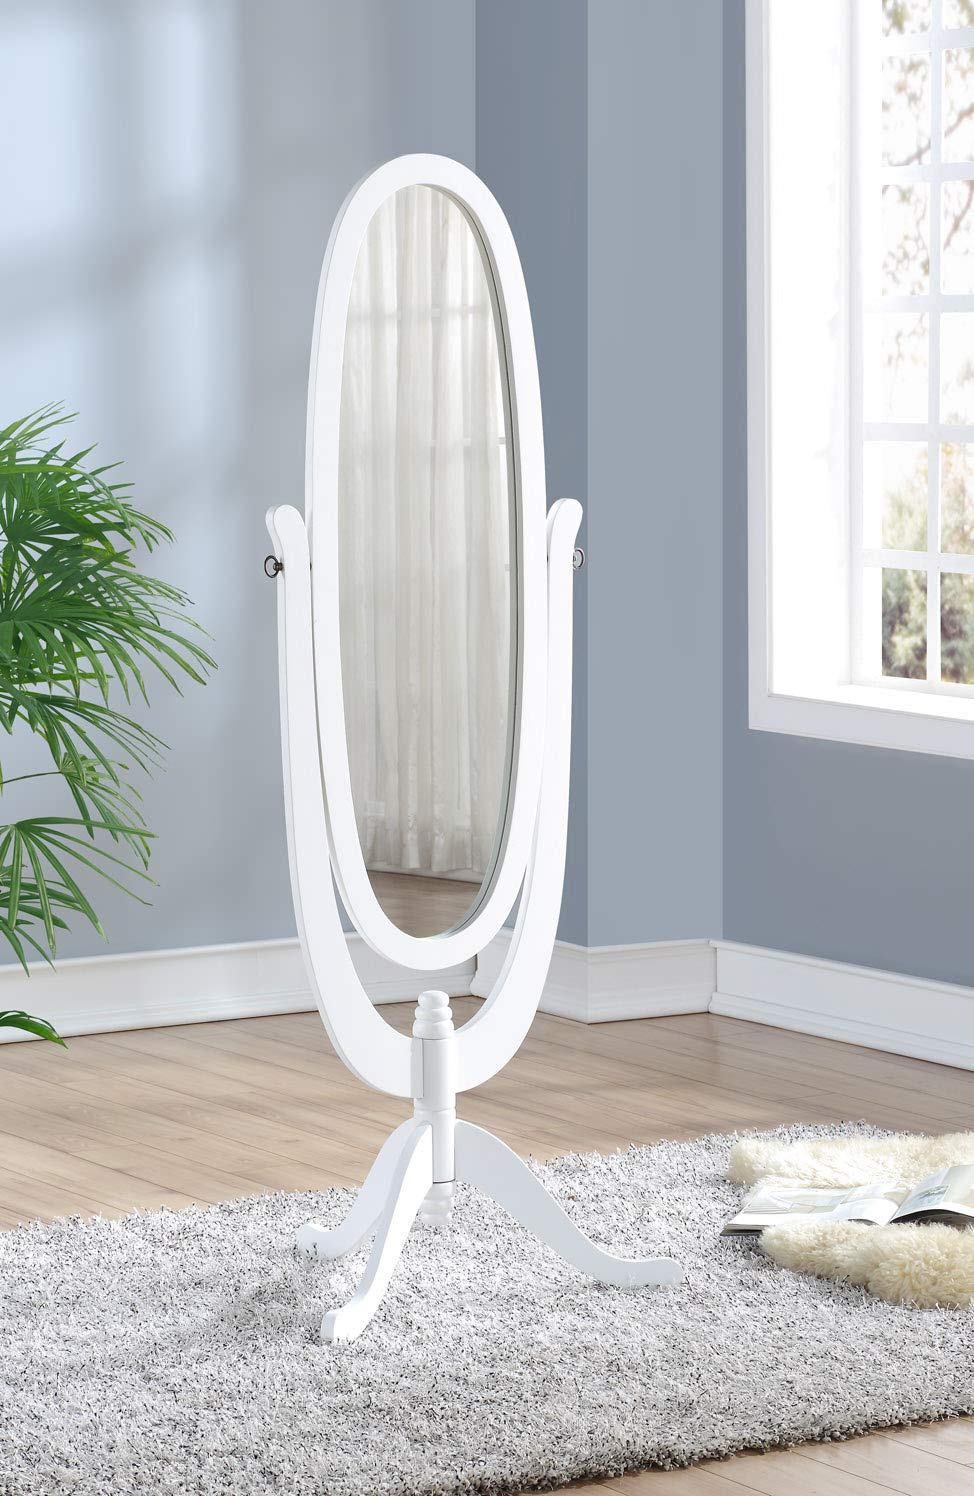 None Solid Wood Cheval Floor Oval Mirror with 3 Legs, White Finish